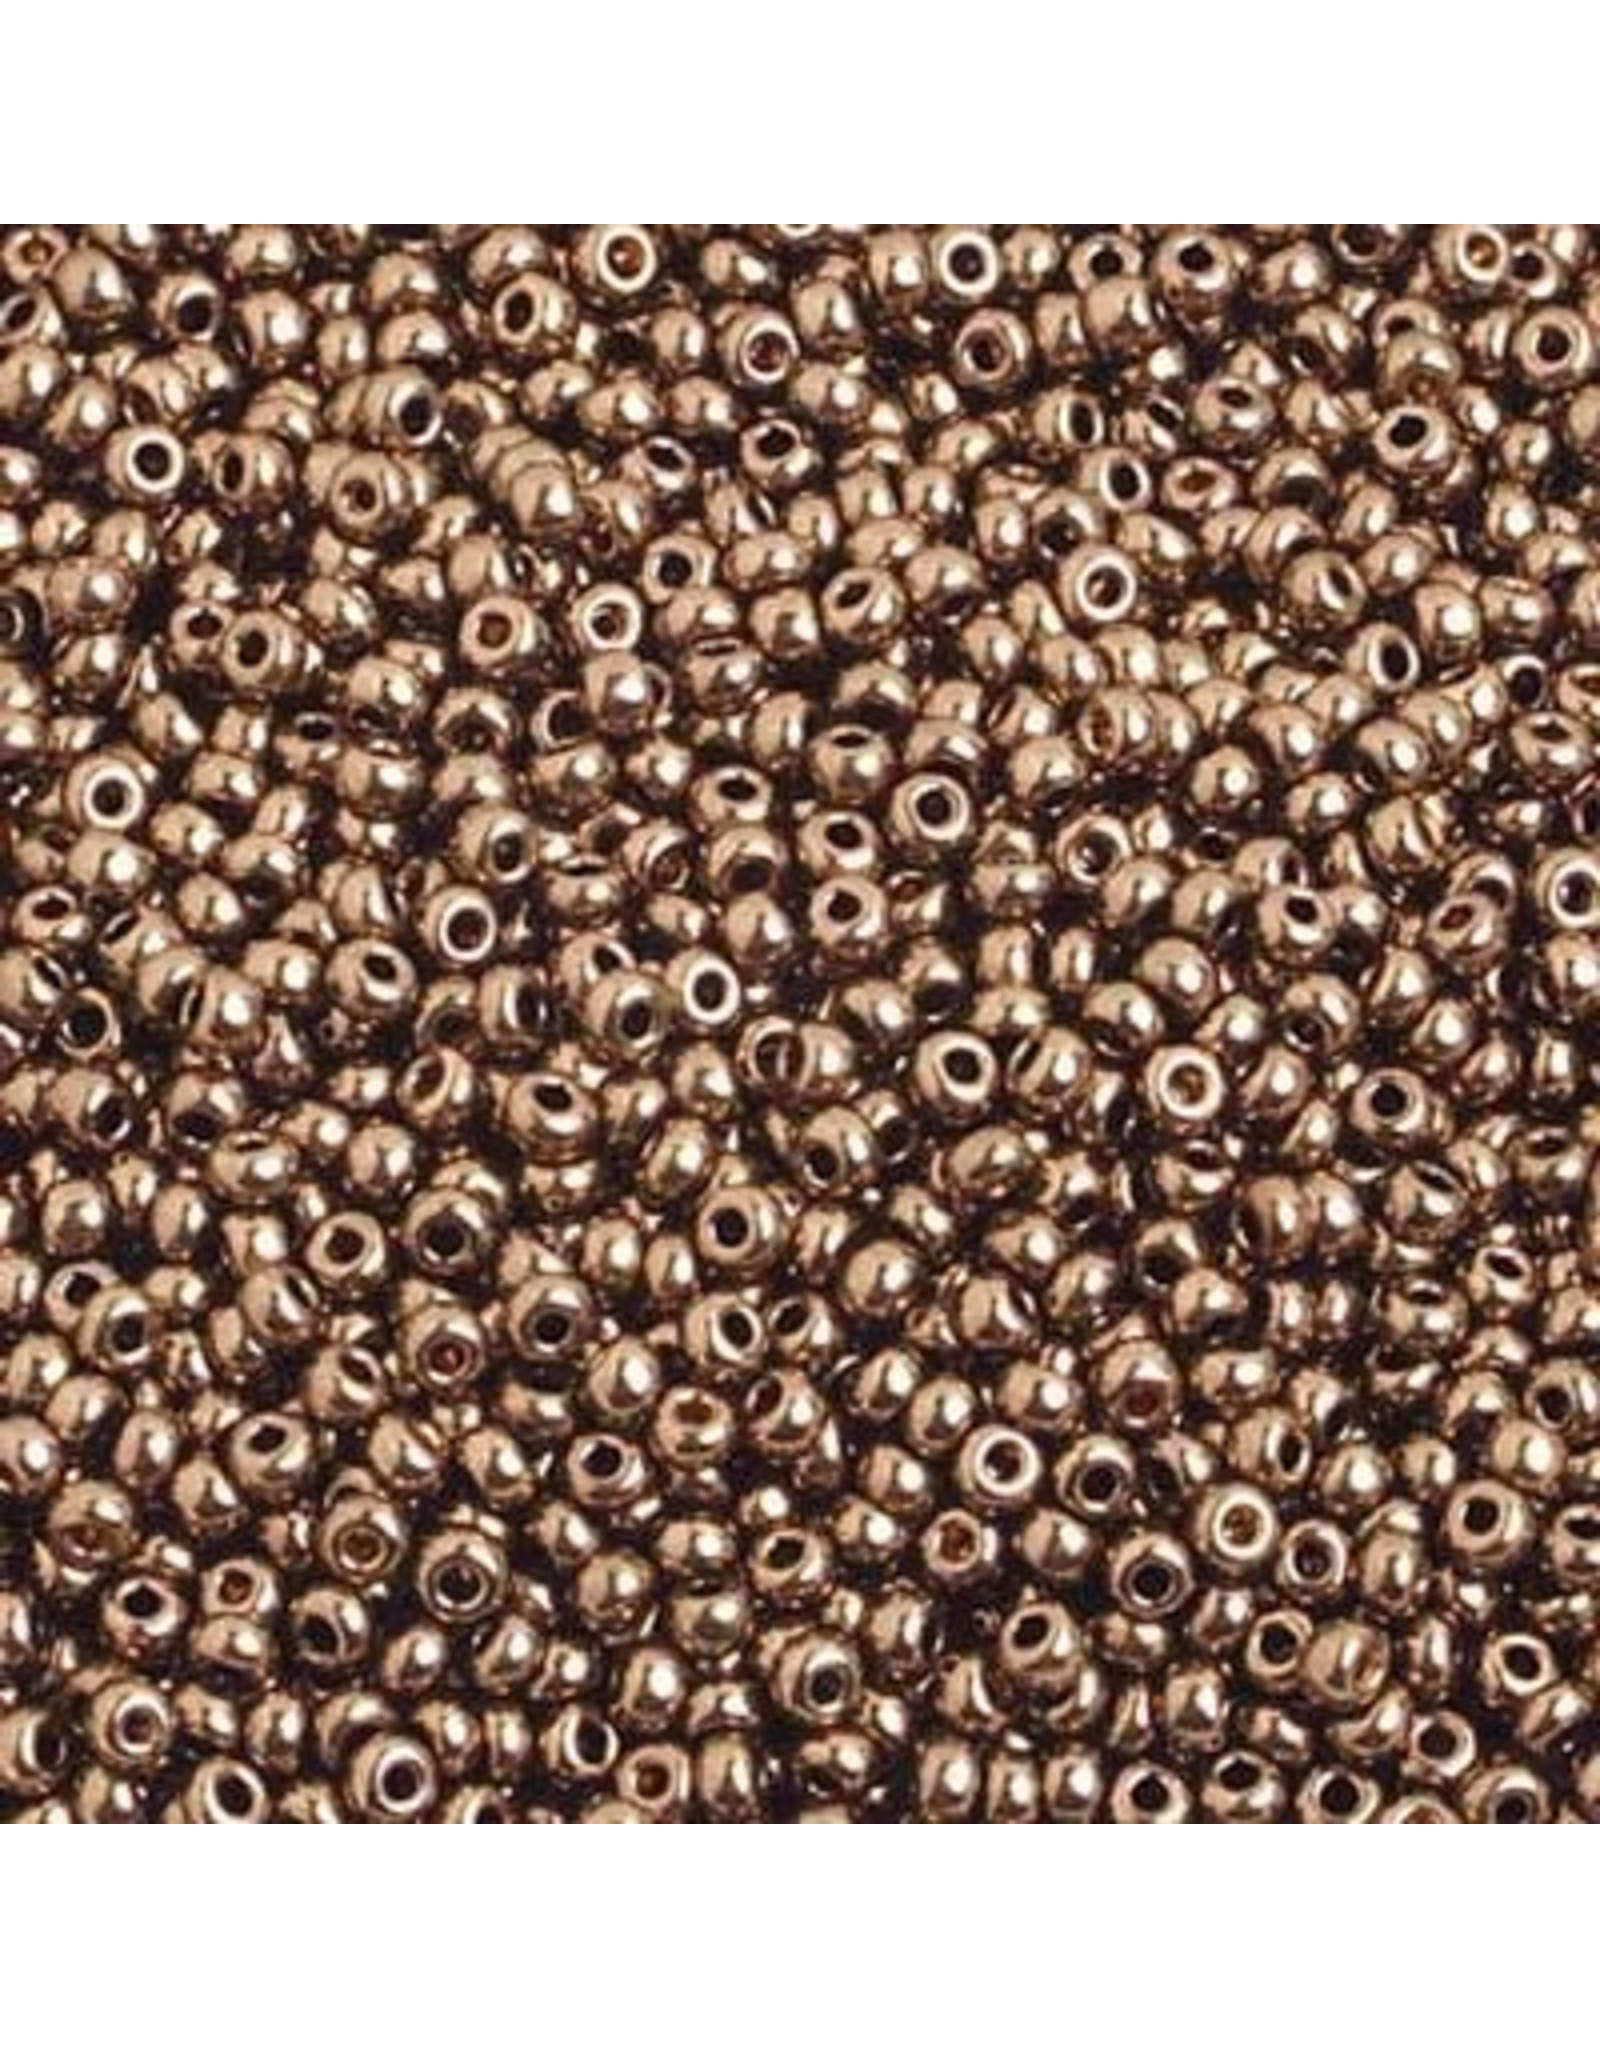 Czech *17582 10   Seed 10g Bronze Brown Metallic